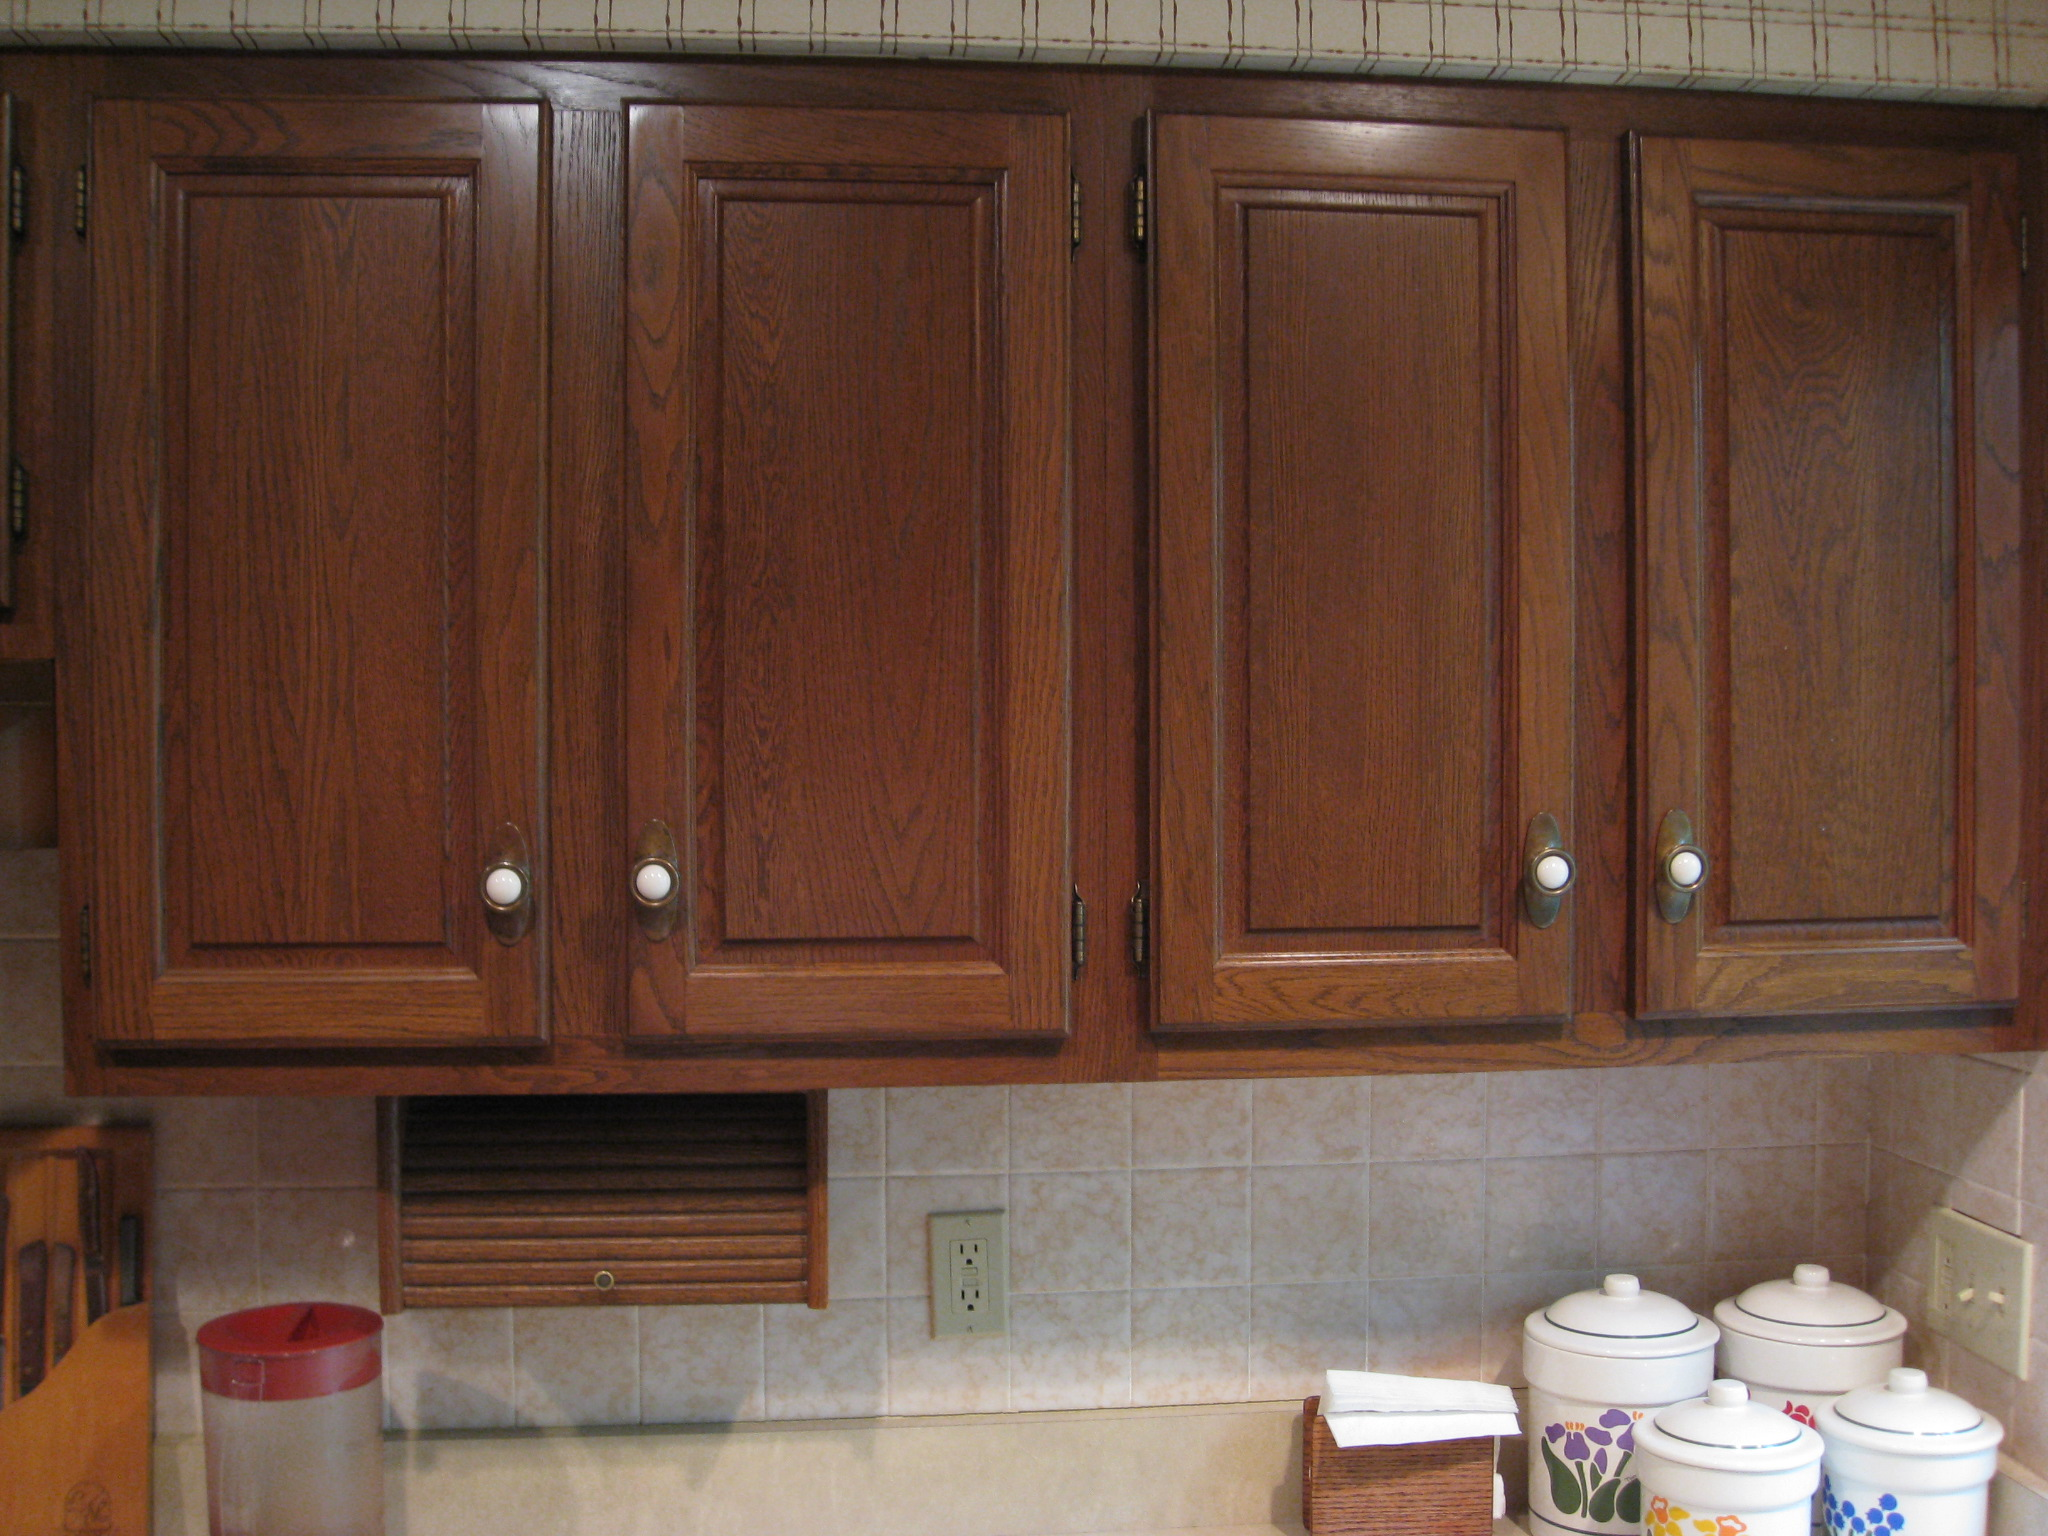 restaining-kitchen-cabinets-gel-stain-photo-16